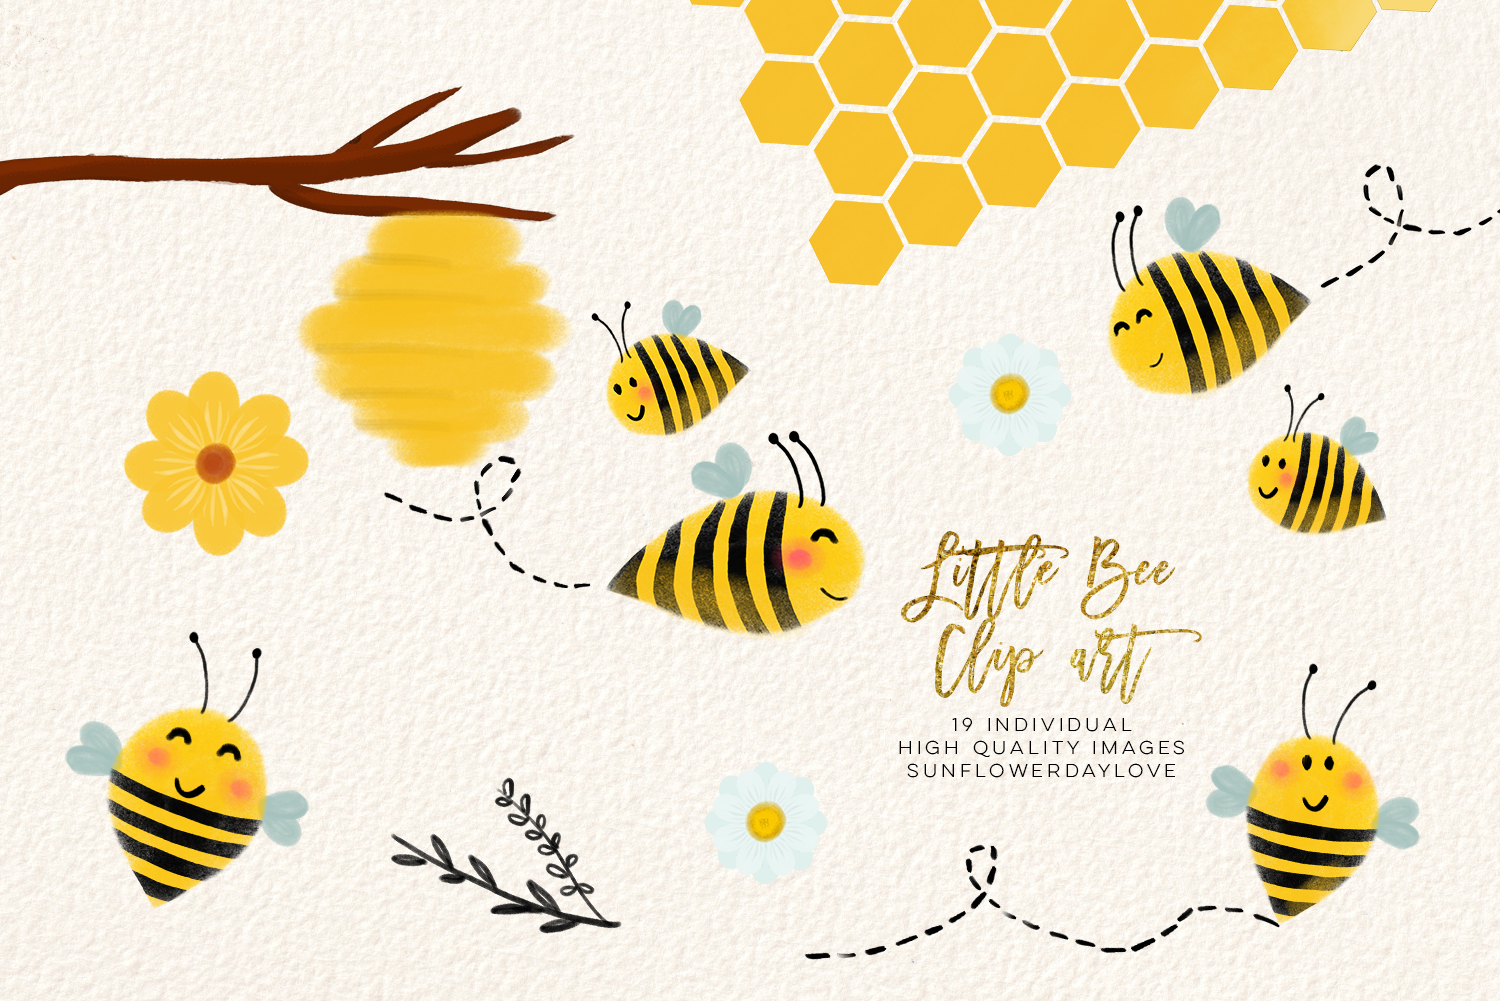 bee clip art, bees illustration, Honey bee clipart example image 2